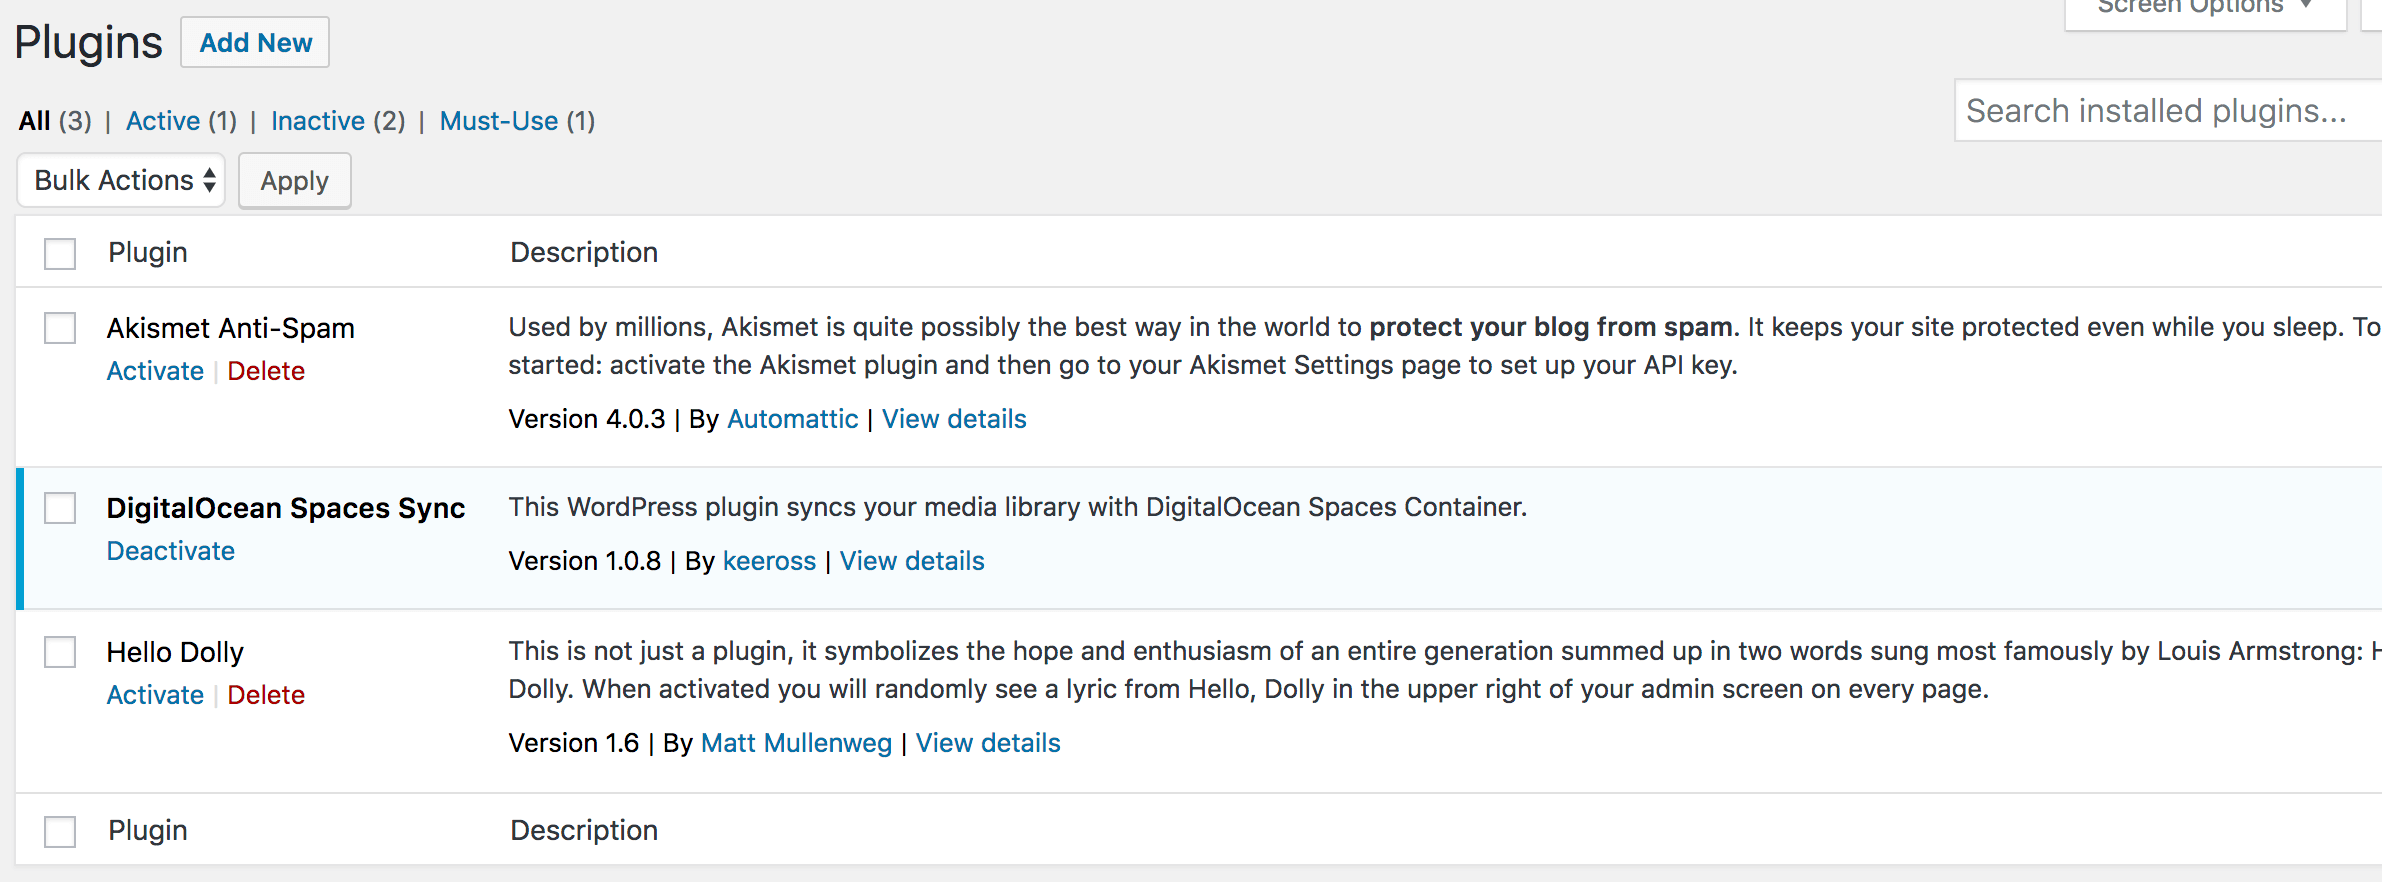 How To Store WordPress Assets on DigitalOcean Spaces | DigitalOcean